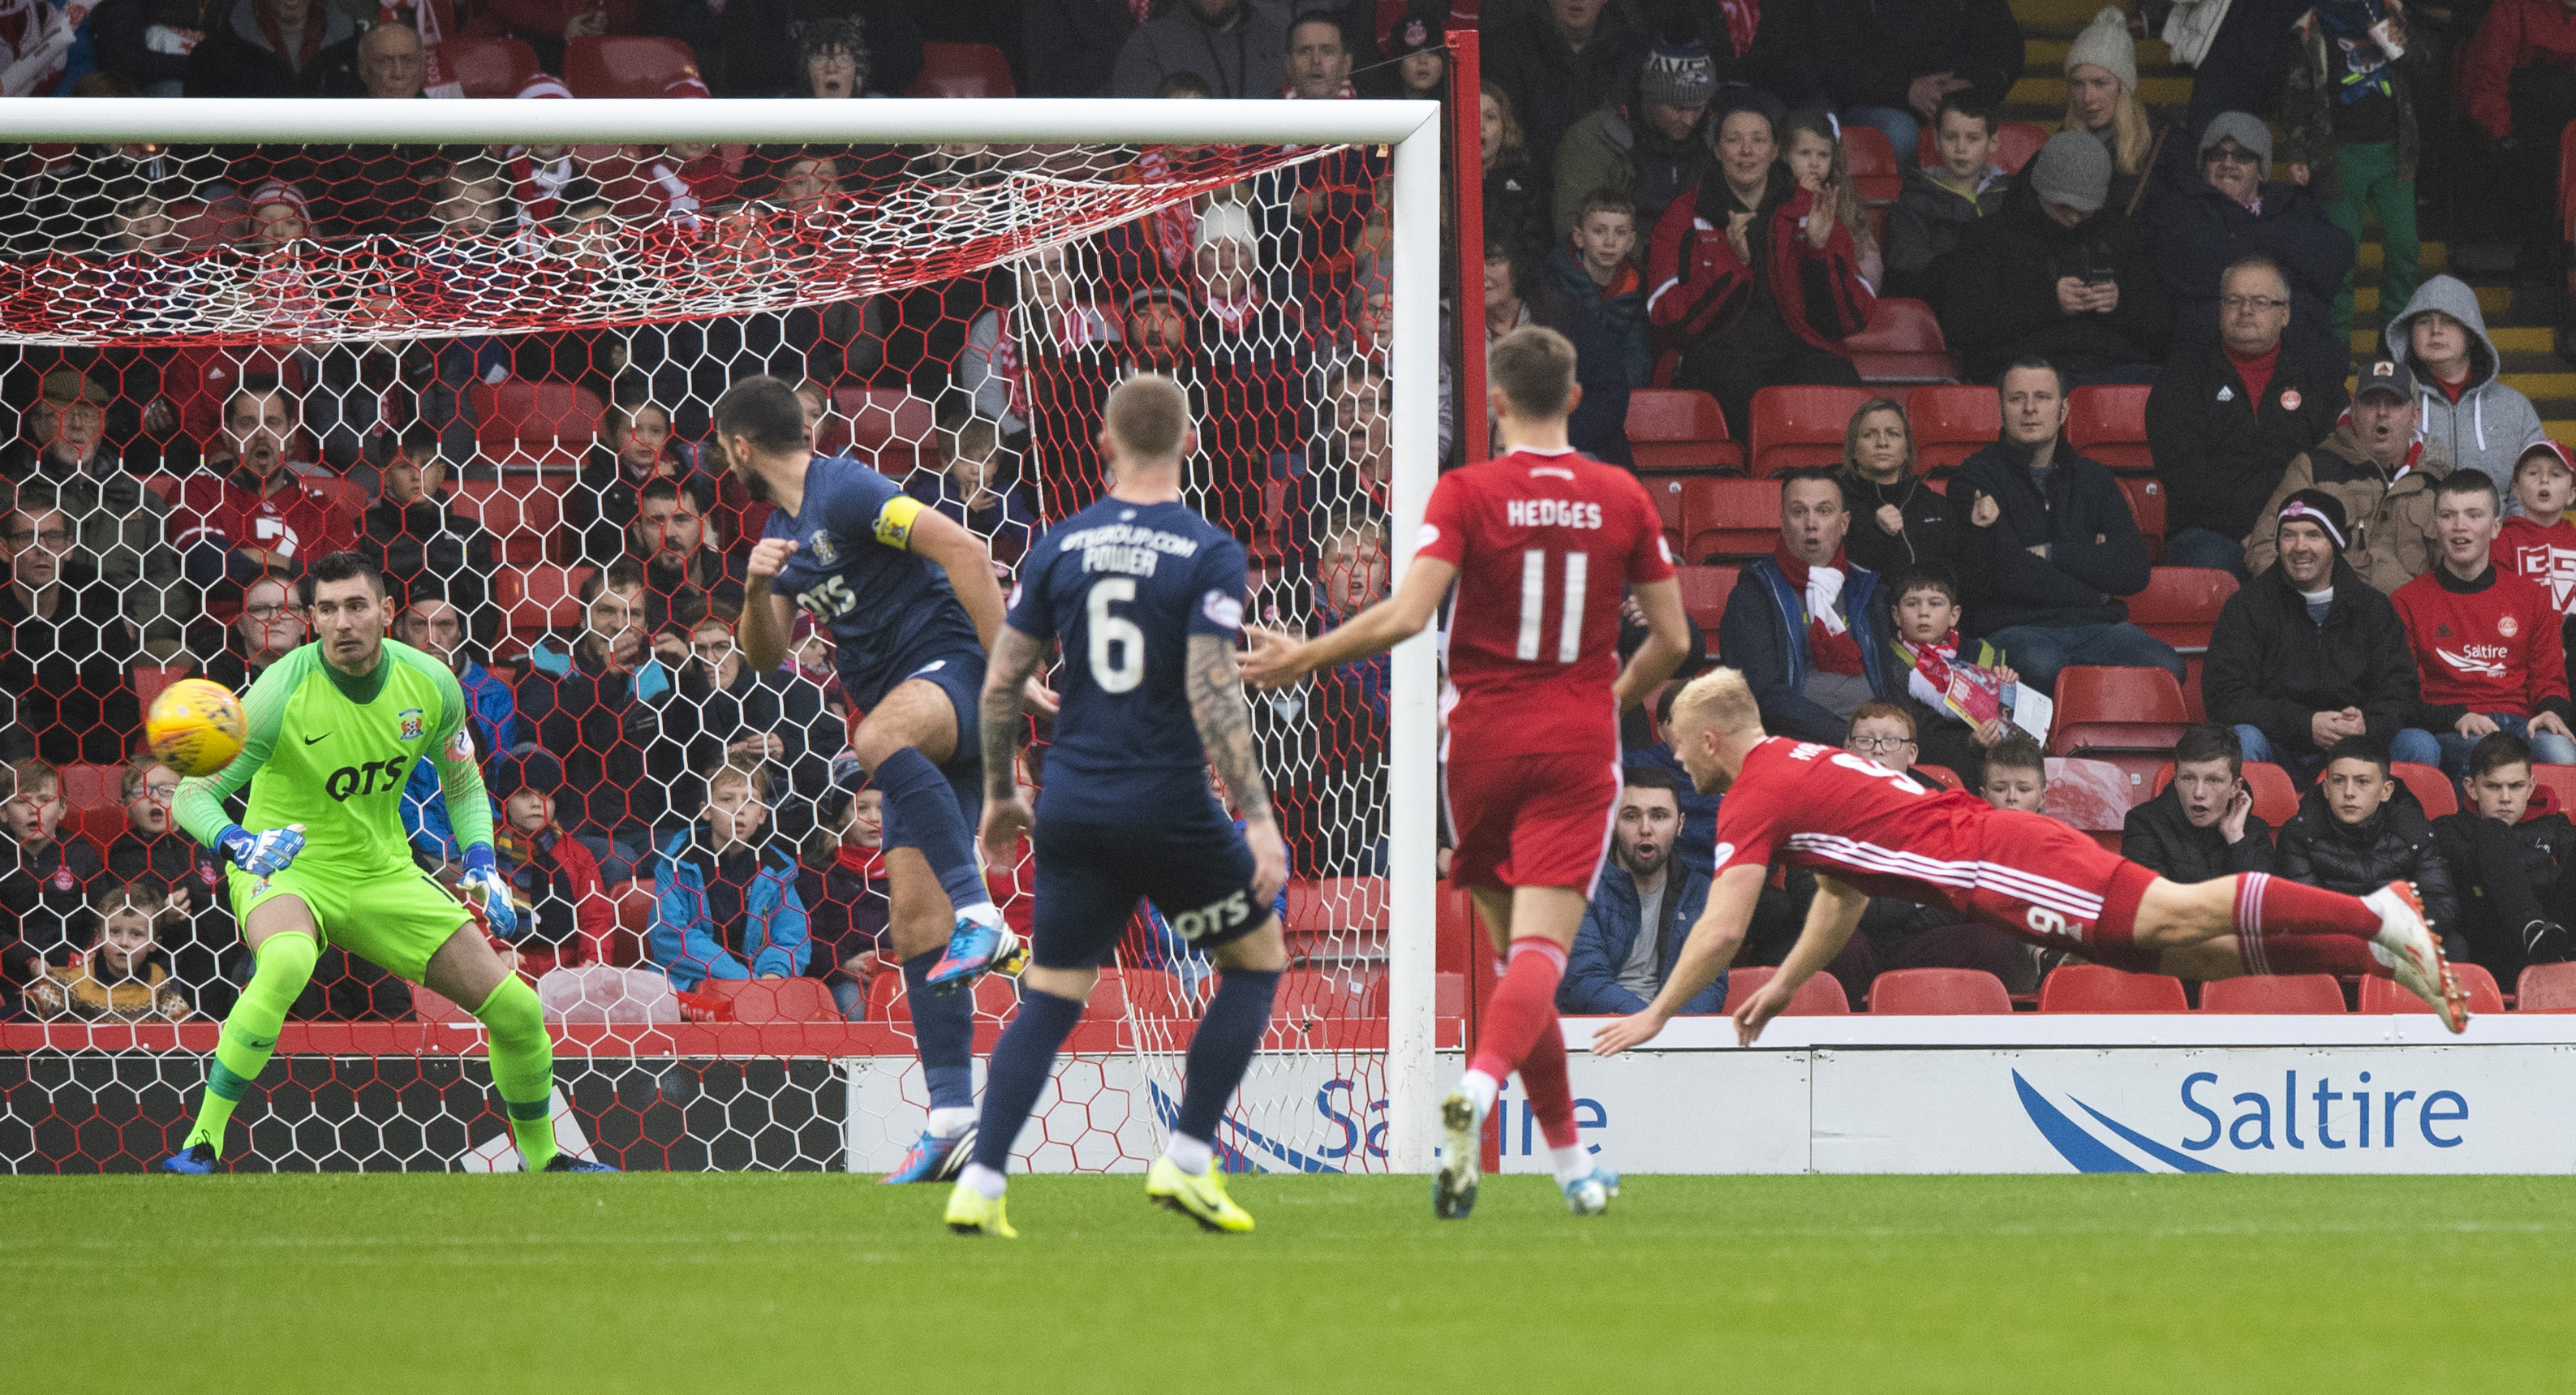 Curtis Main (R) heads home to make it 1-0 to Aberdeen